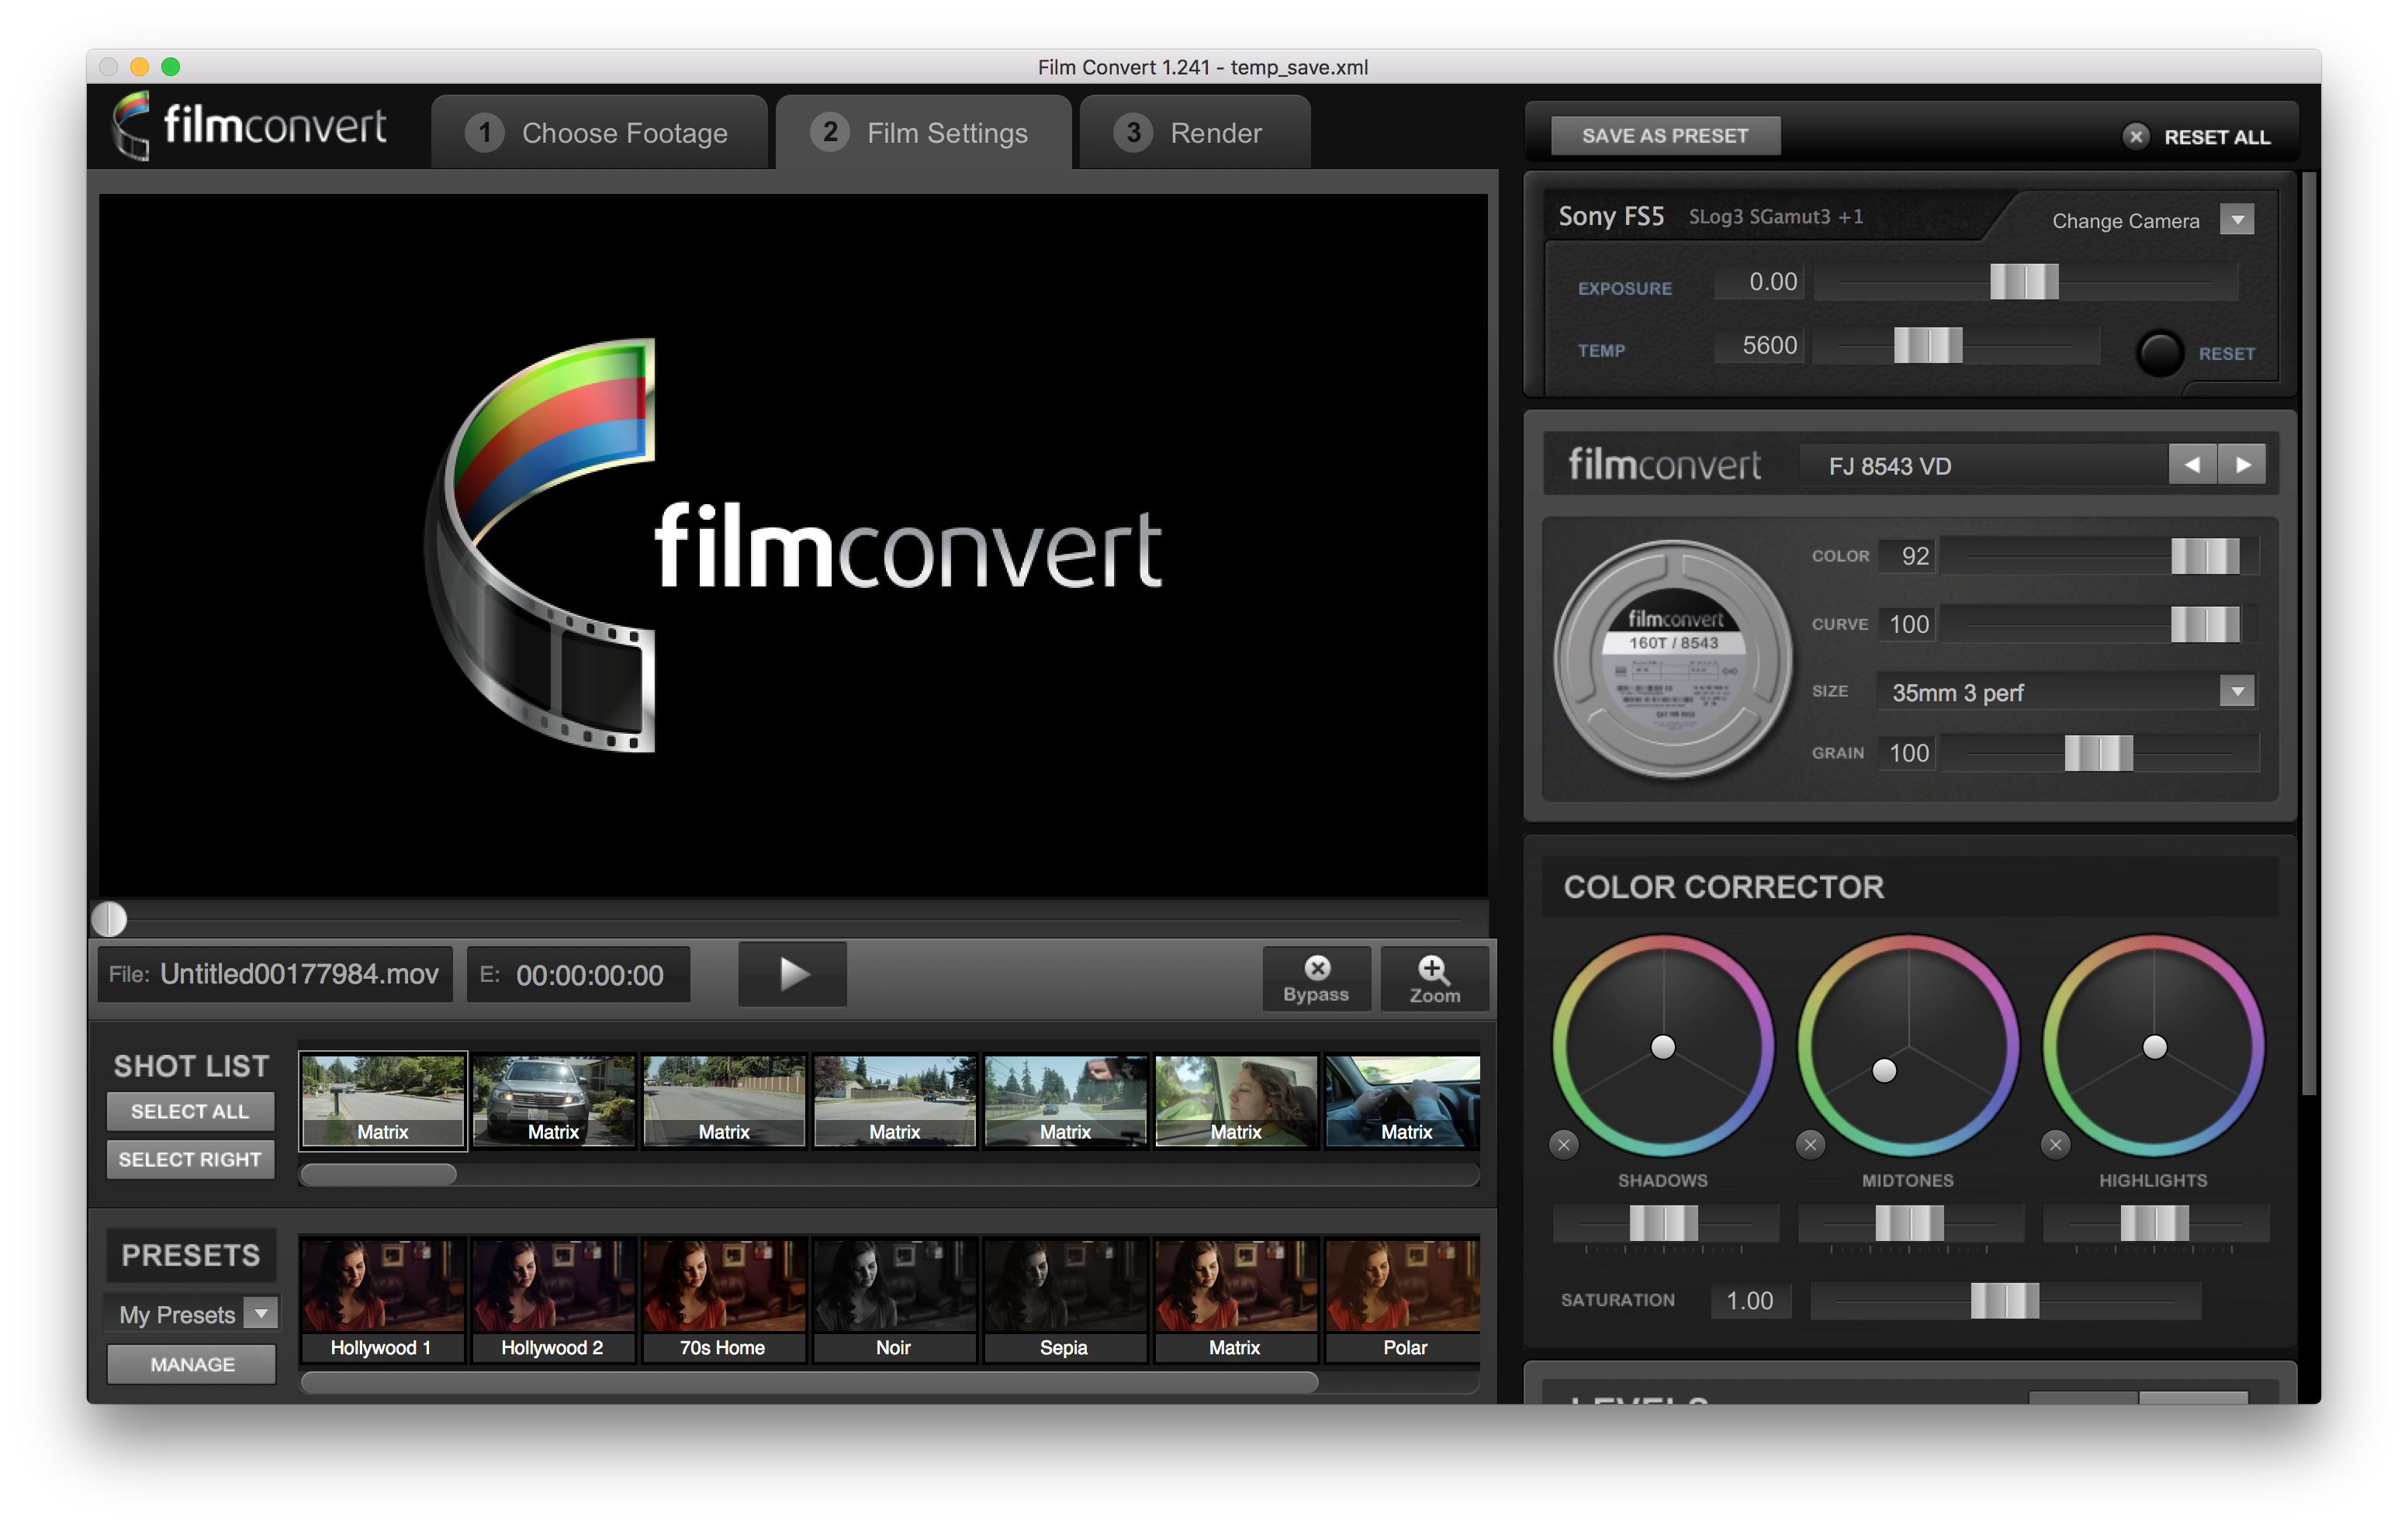 FilmConvert Pro - Script, Plugin For After Effect For Mac